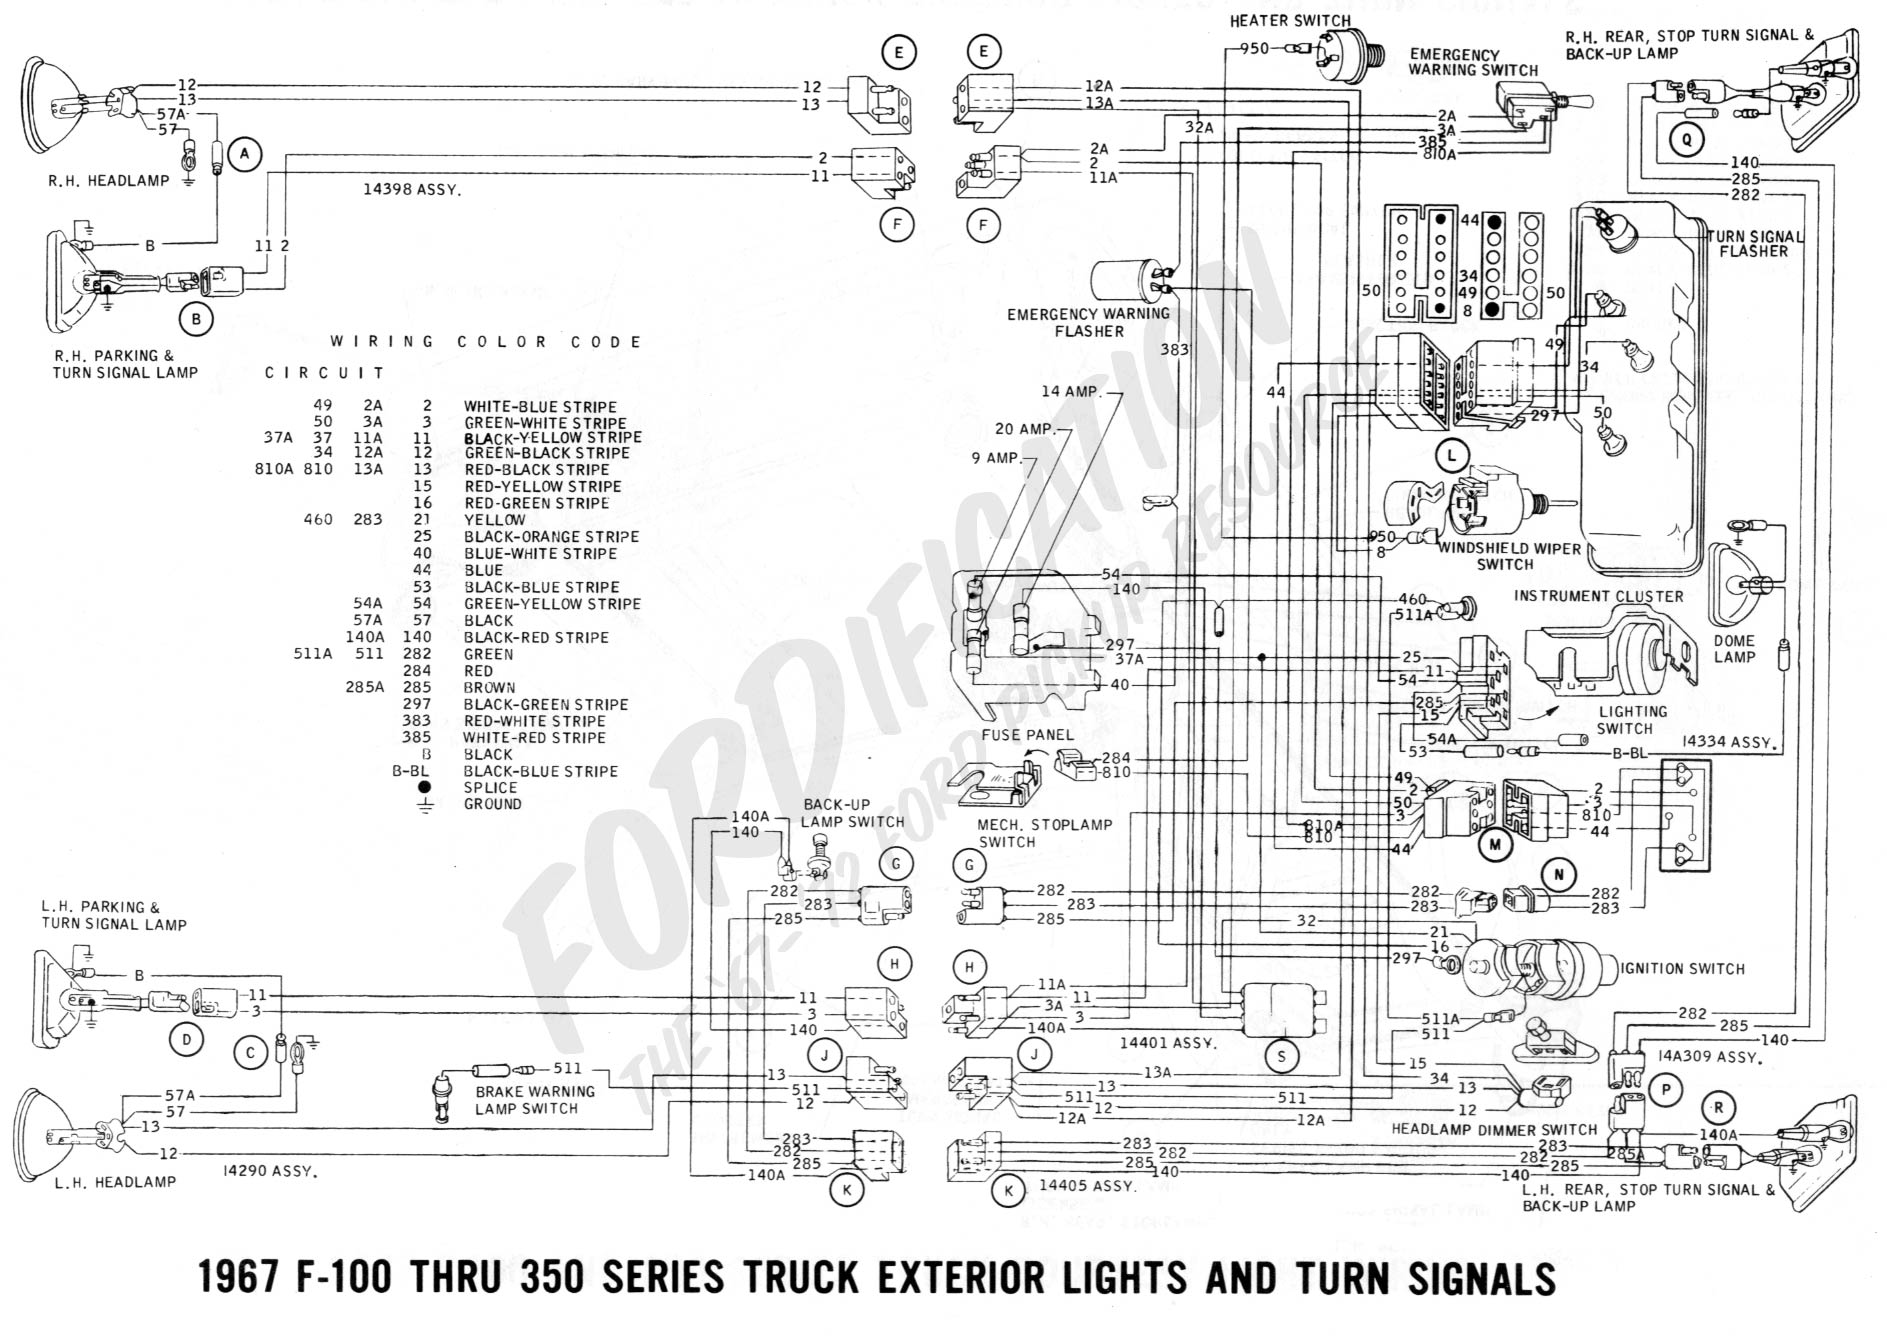 ford truck technical drawings and schematics section h wiring rh fordification com 1996 Ford F-150 Wiring Diagram 1996 Ford F-250 Ford